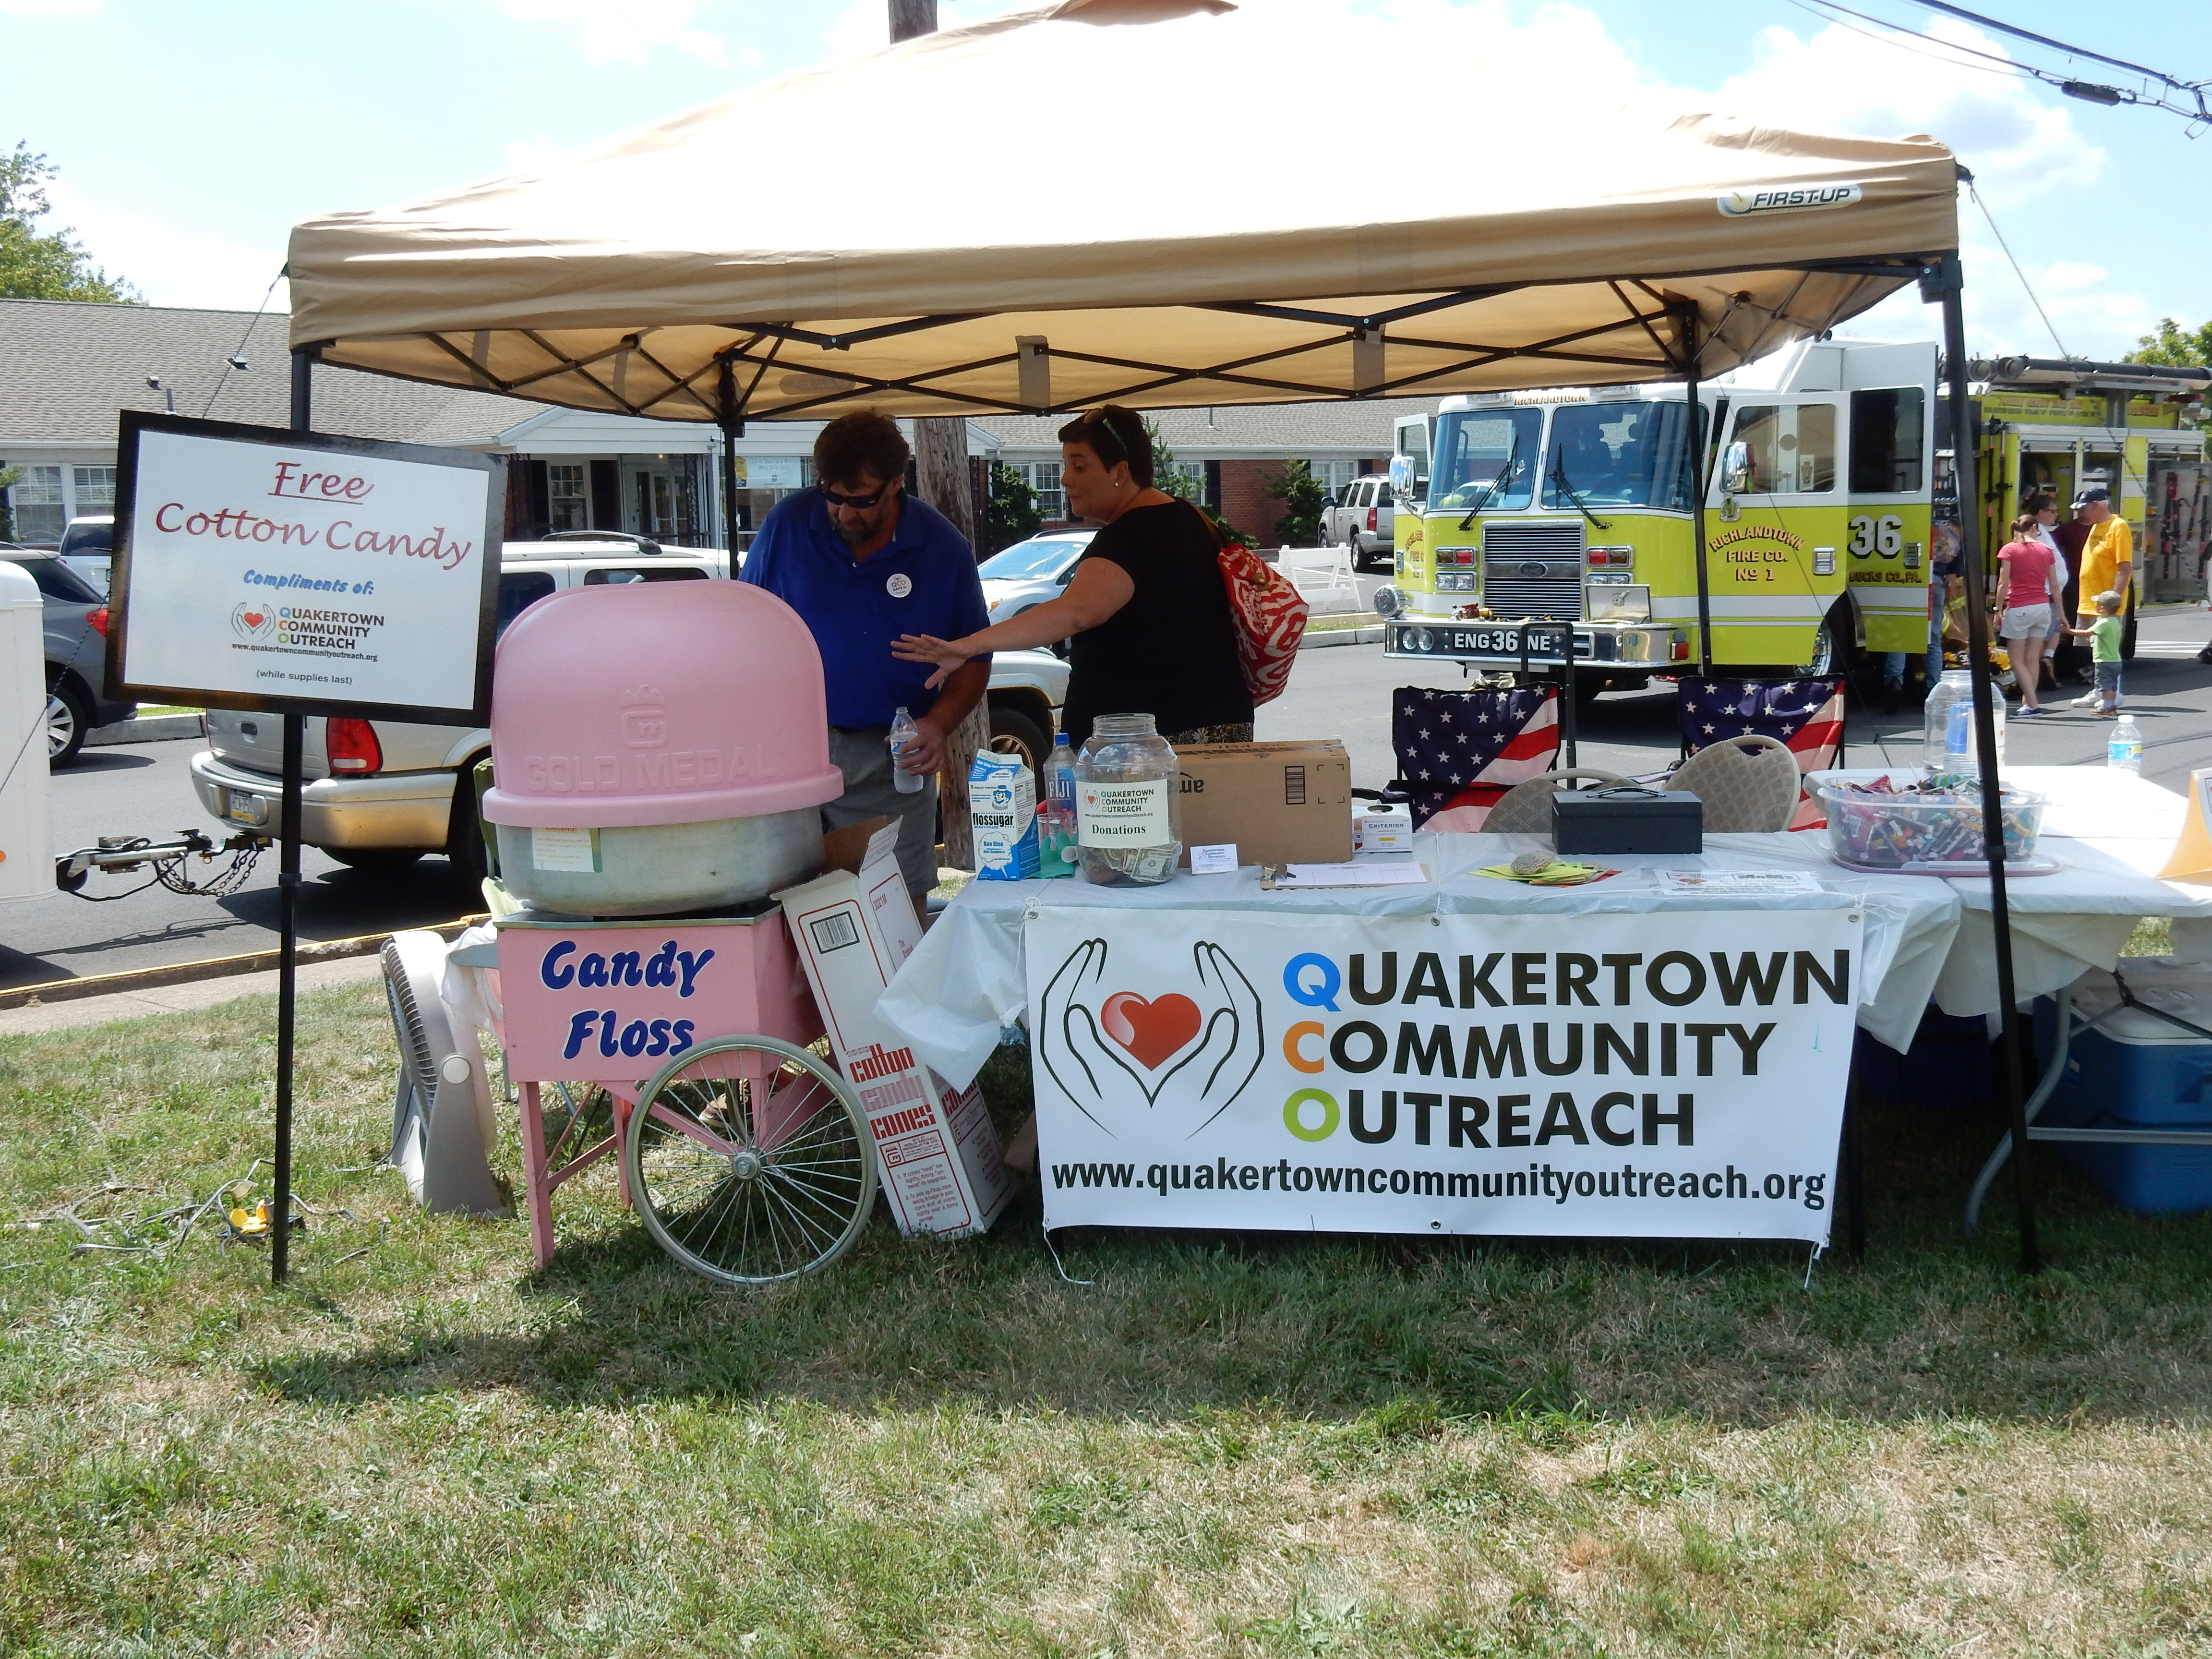 Quakertown Community Outreach Block Party Pix Aug 13 2016